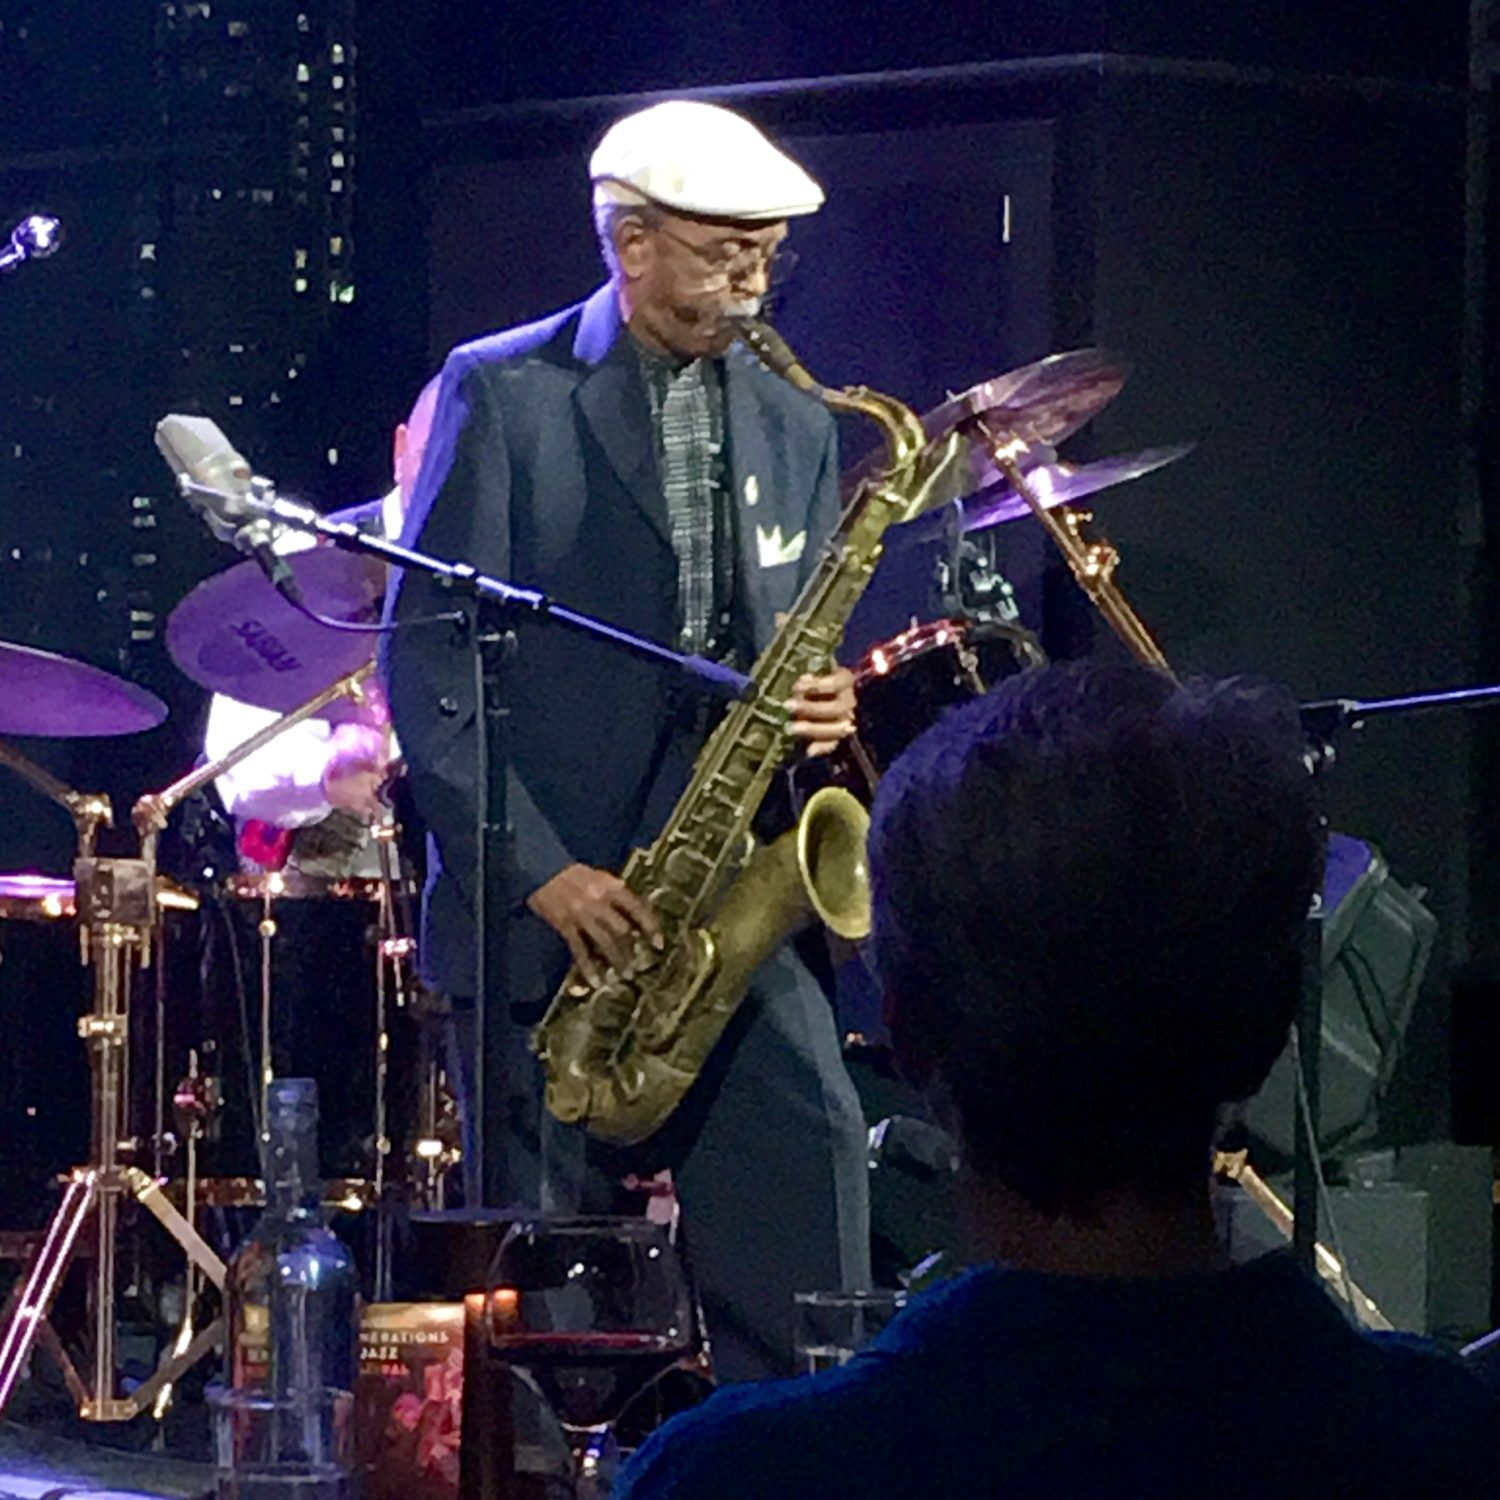 jazz day closes April sparks worldwide